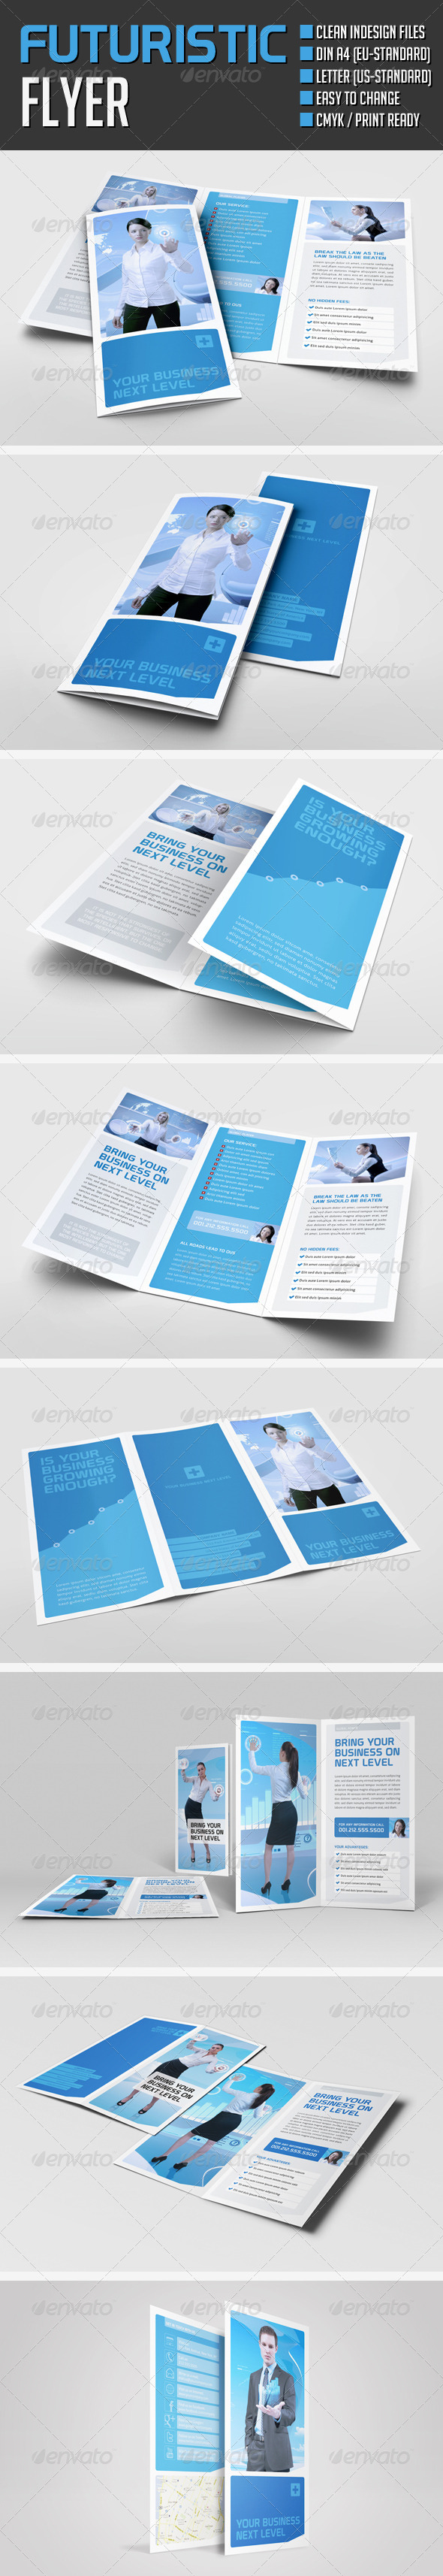 Futuristic Brochures - Corporate Flyers